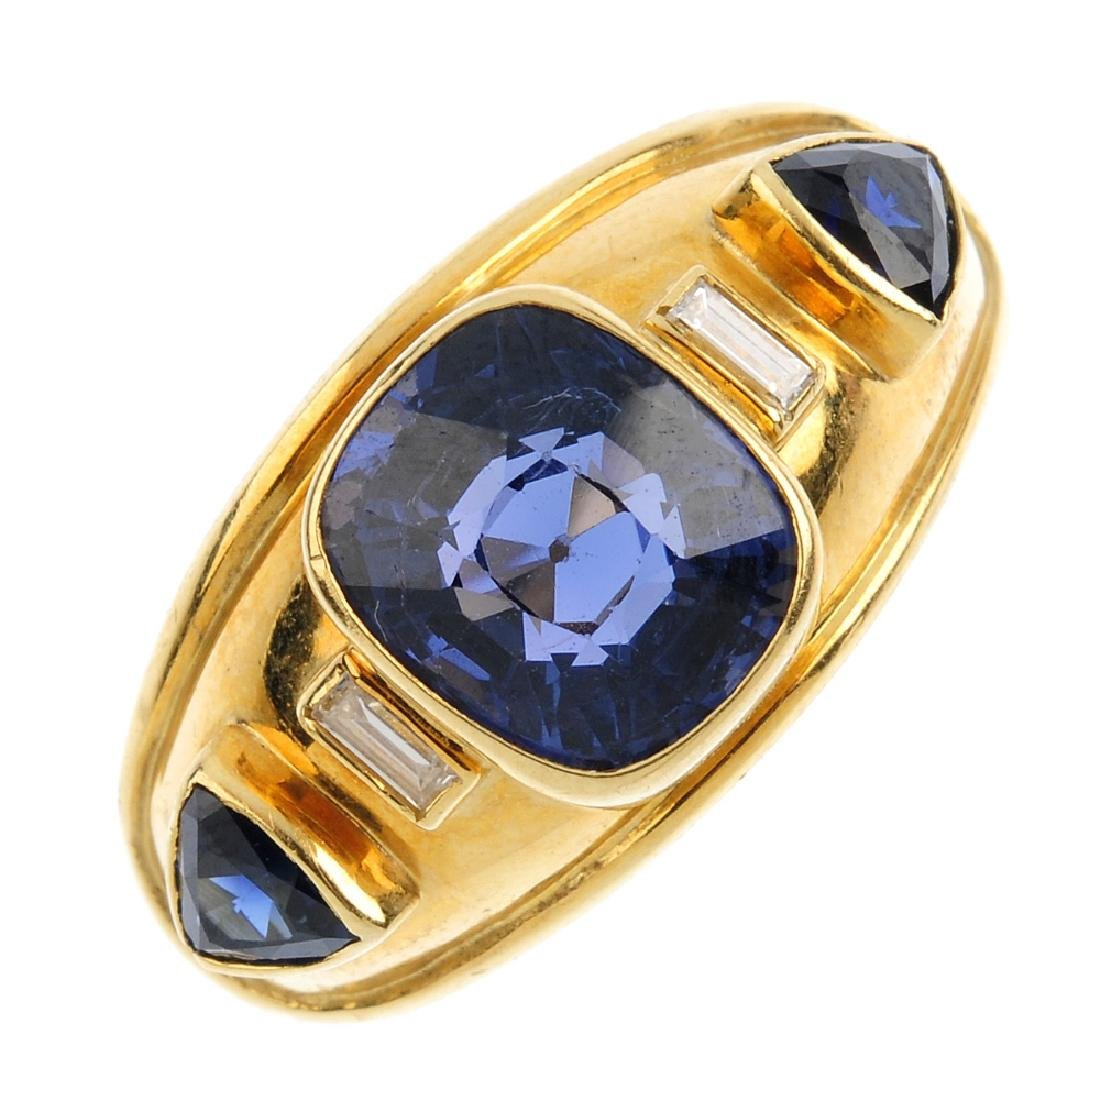 An 18ct gold spinel, sapphire and diamond ring. The